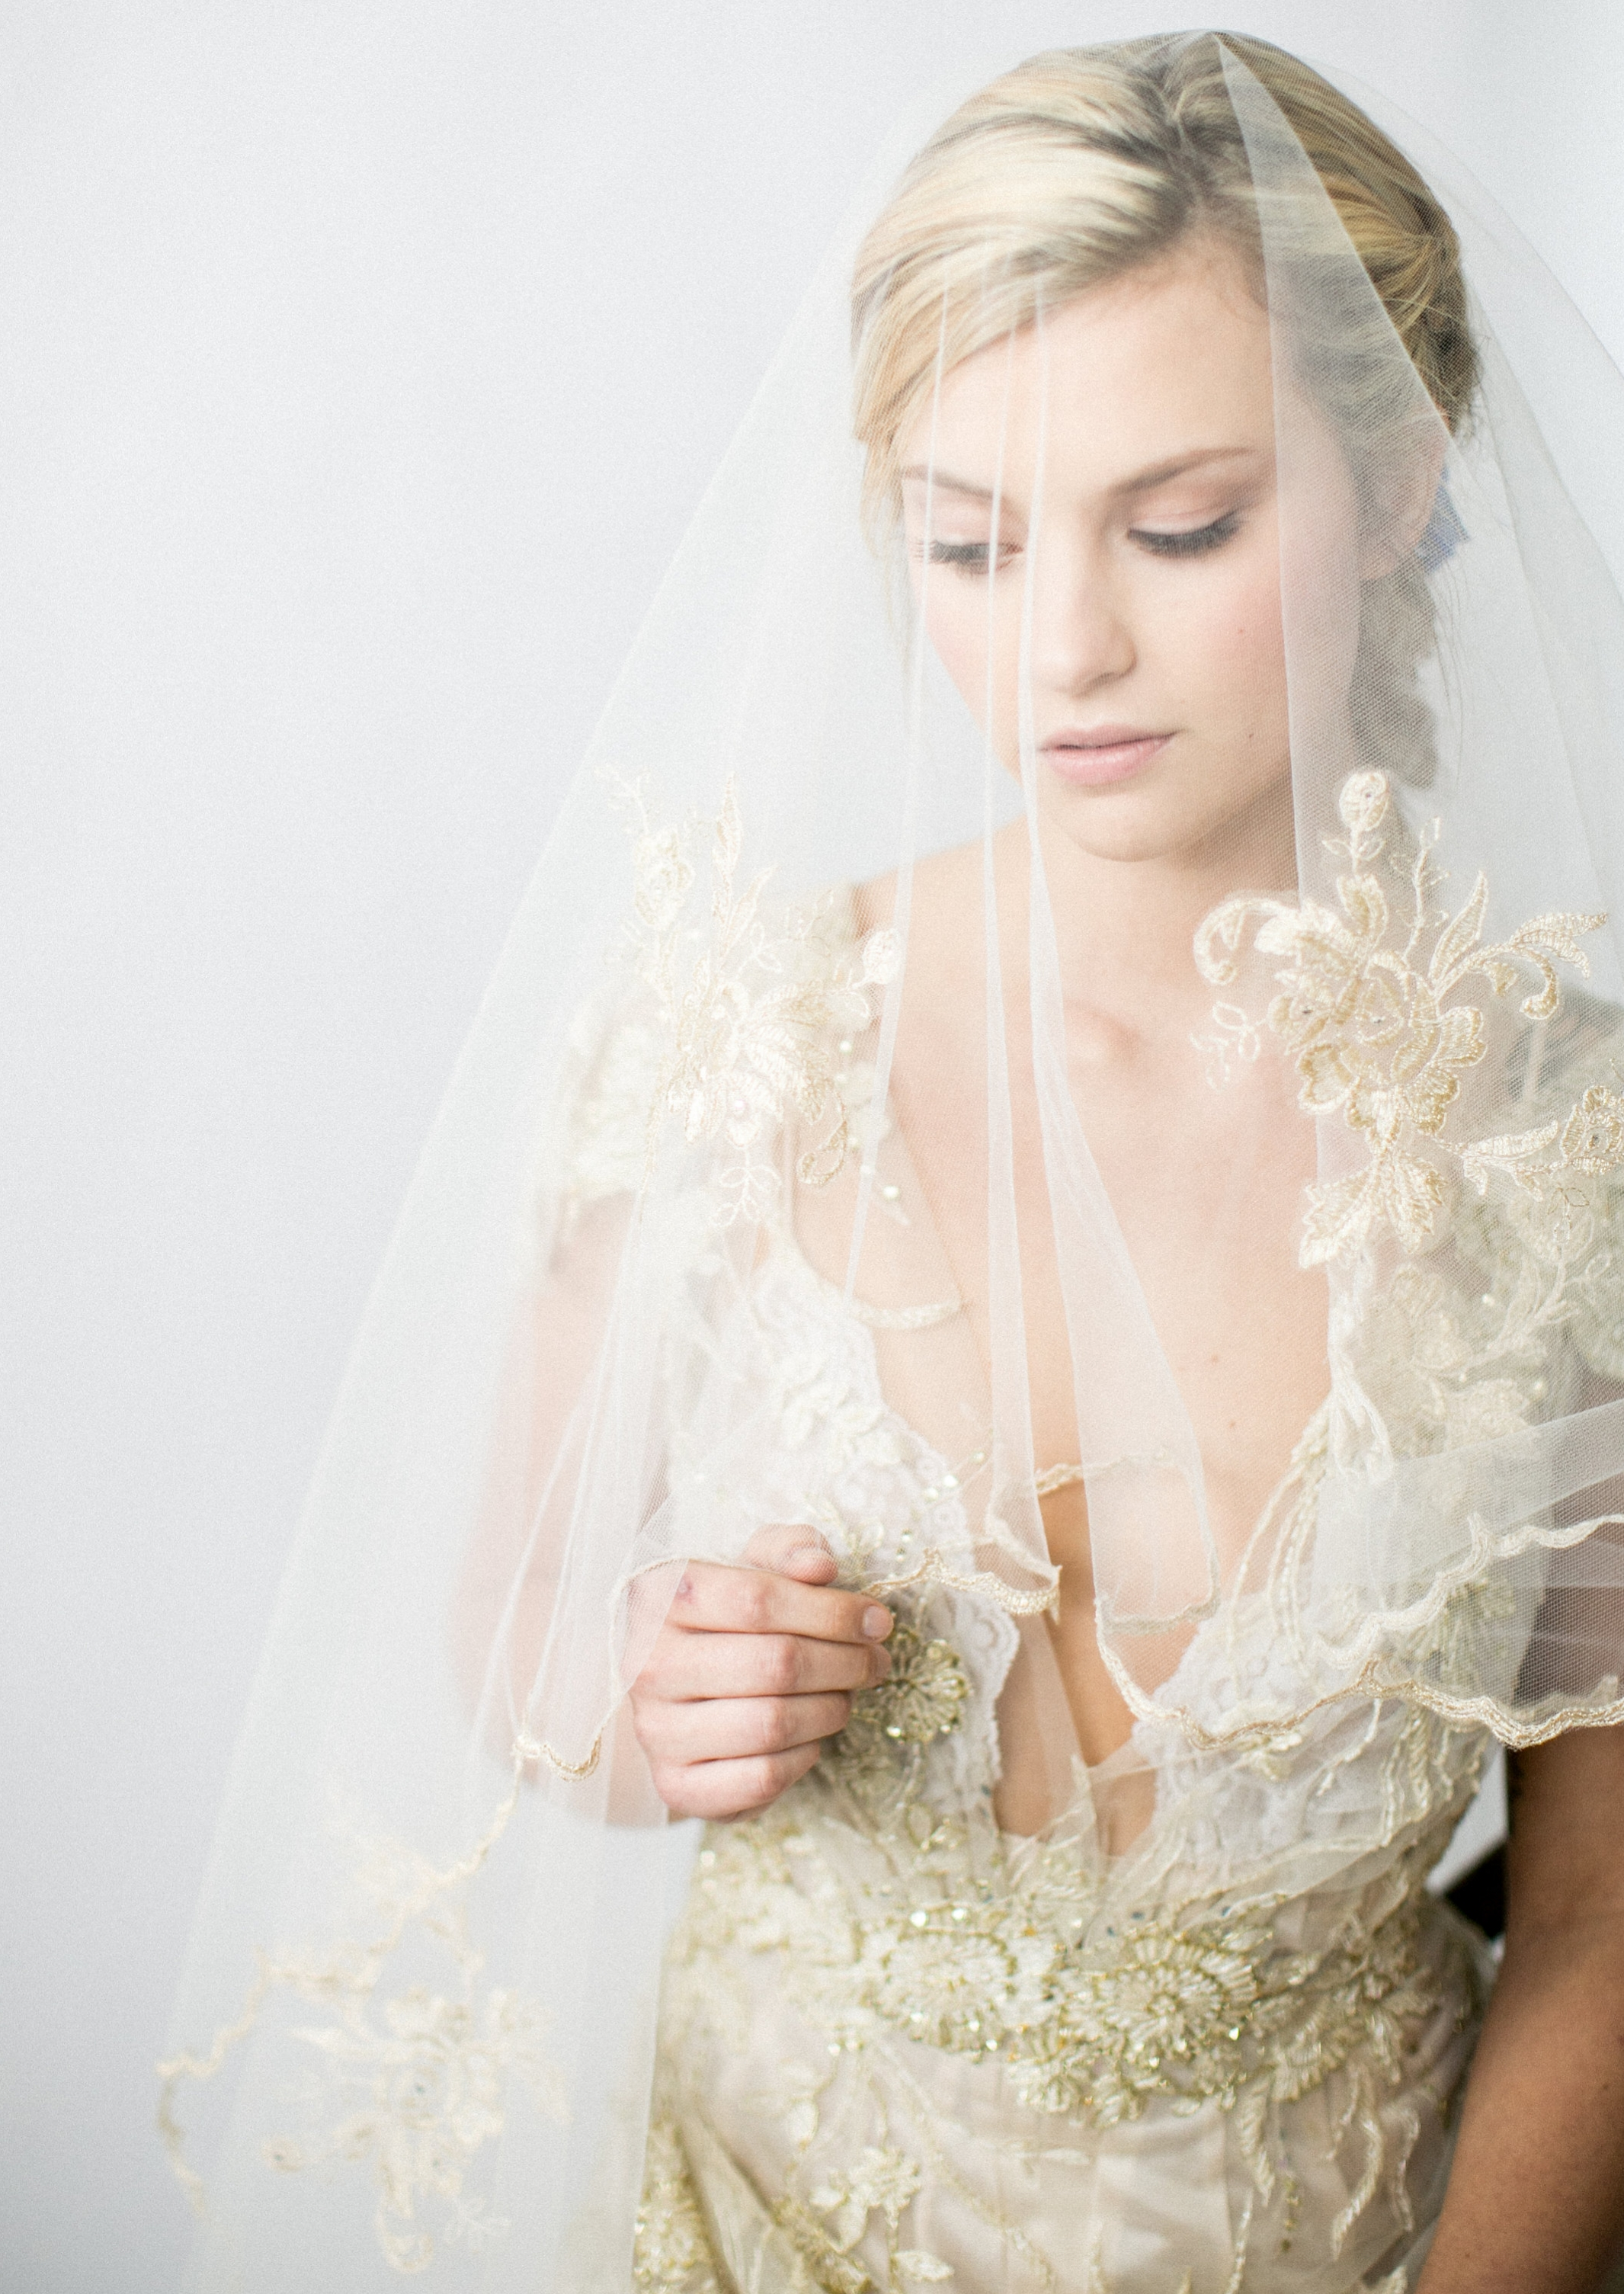 Custom Veil - Annie Ekstrom Bridal specializes in creating custom bridal styles. Annie Ekstrom Bridal can create a one-of-a-kind piece that will become a bridal heirloom for generations to come.Veil elements that can be customized:- Length- Material- Lace applique- Style- CombEach item is made to order exactly to the bride's specifications.Annie specializes in:- Designing new styles- Designing new styles using laces or materials from designer gowns